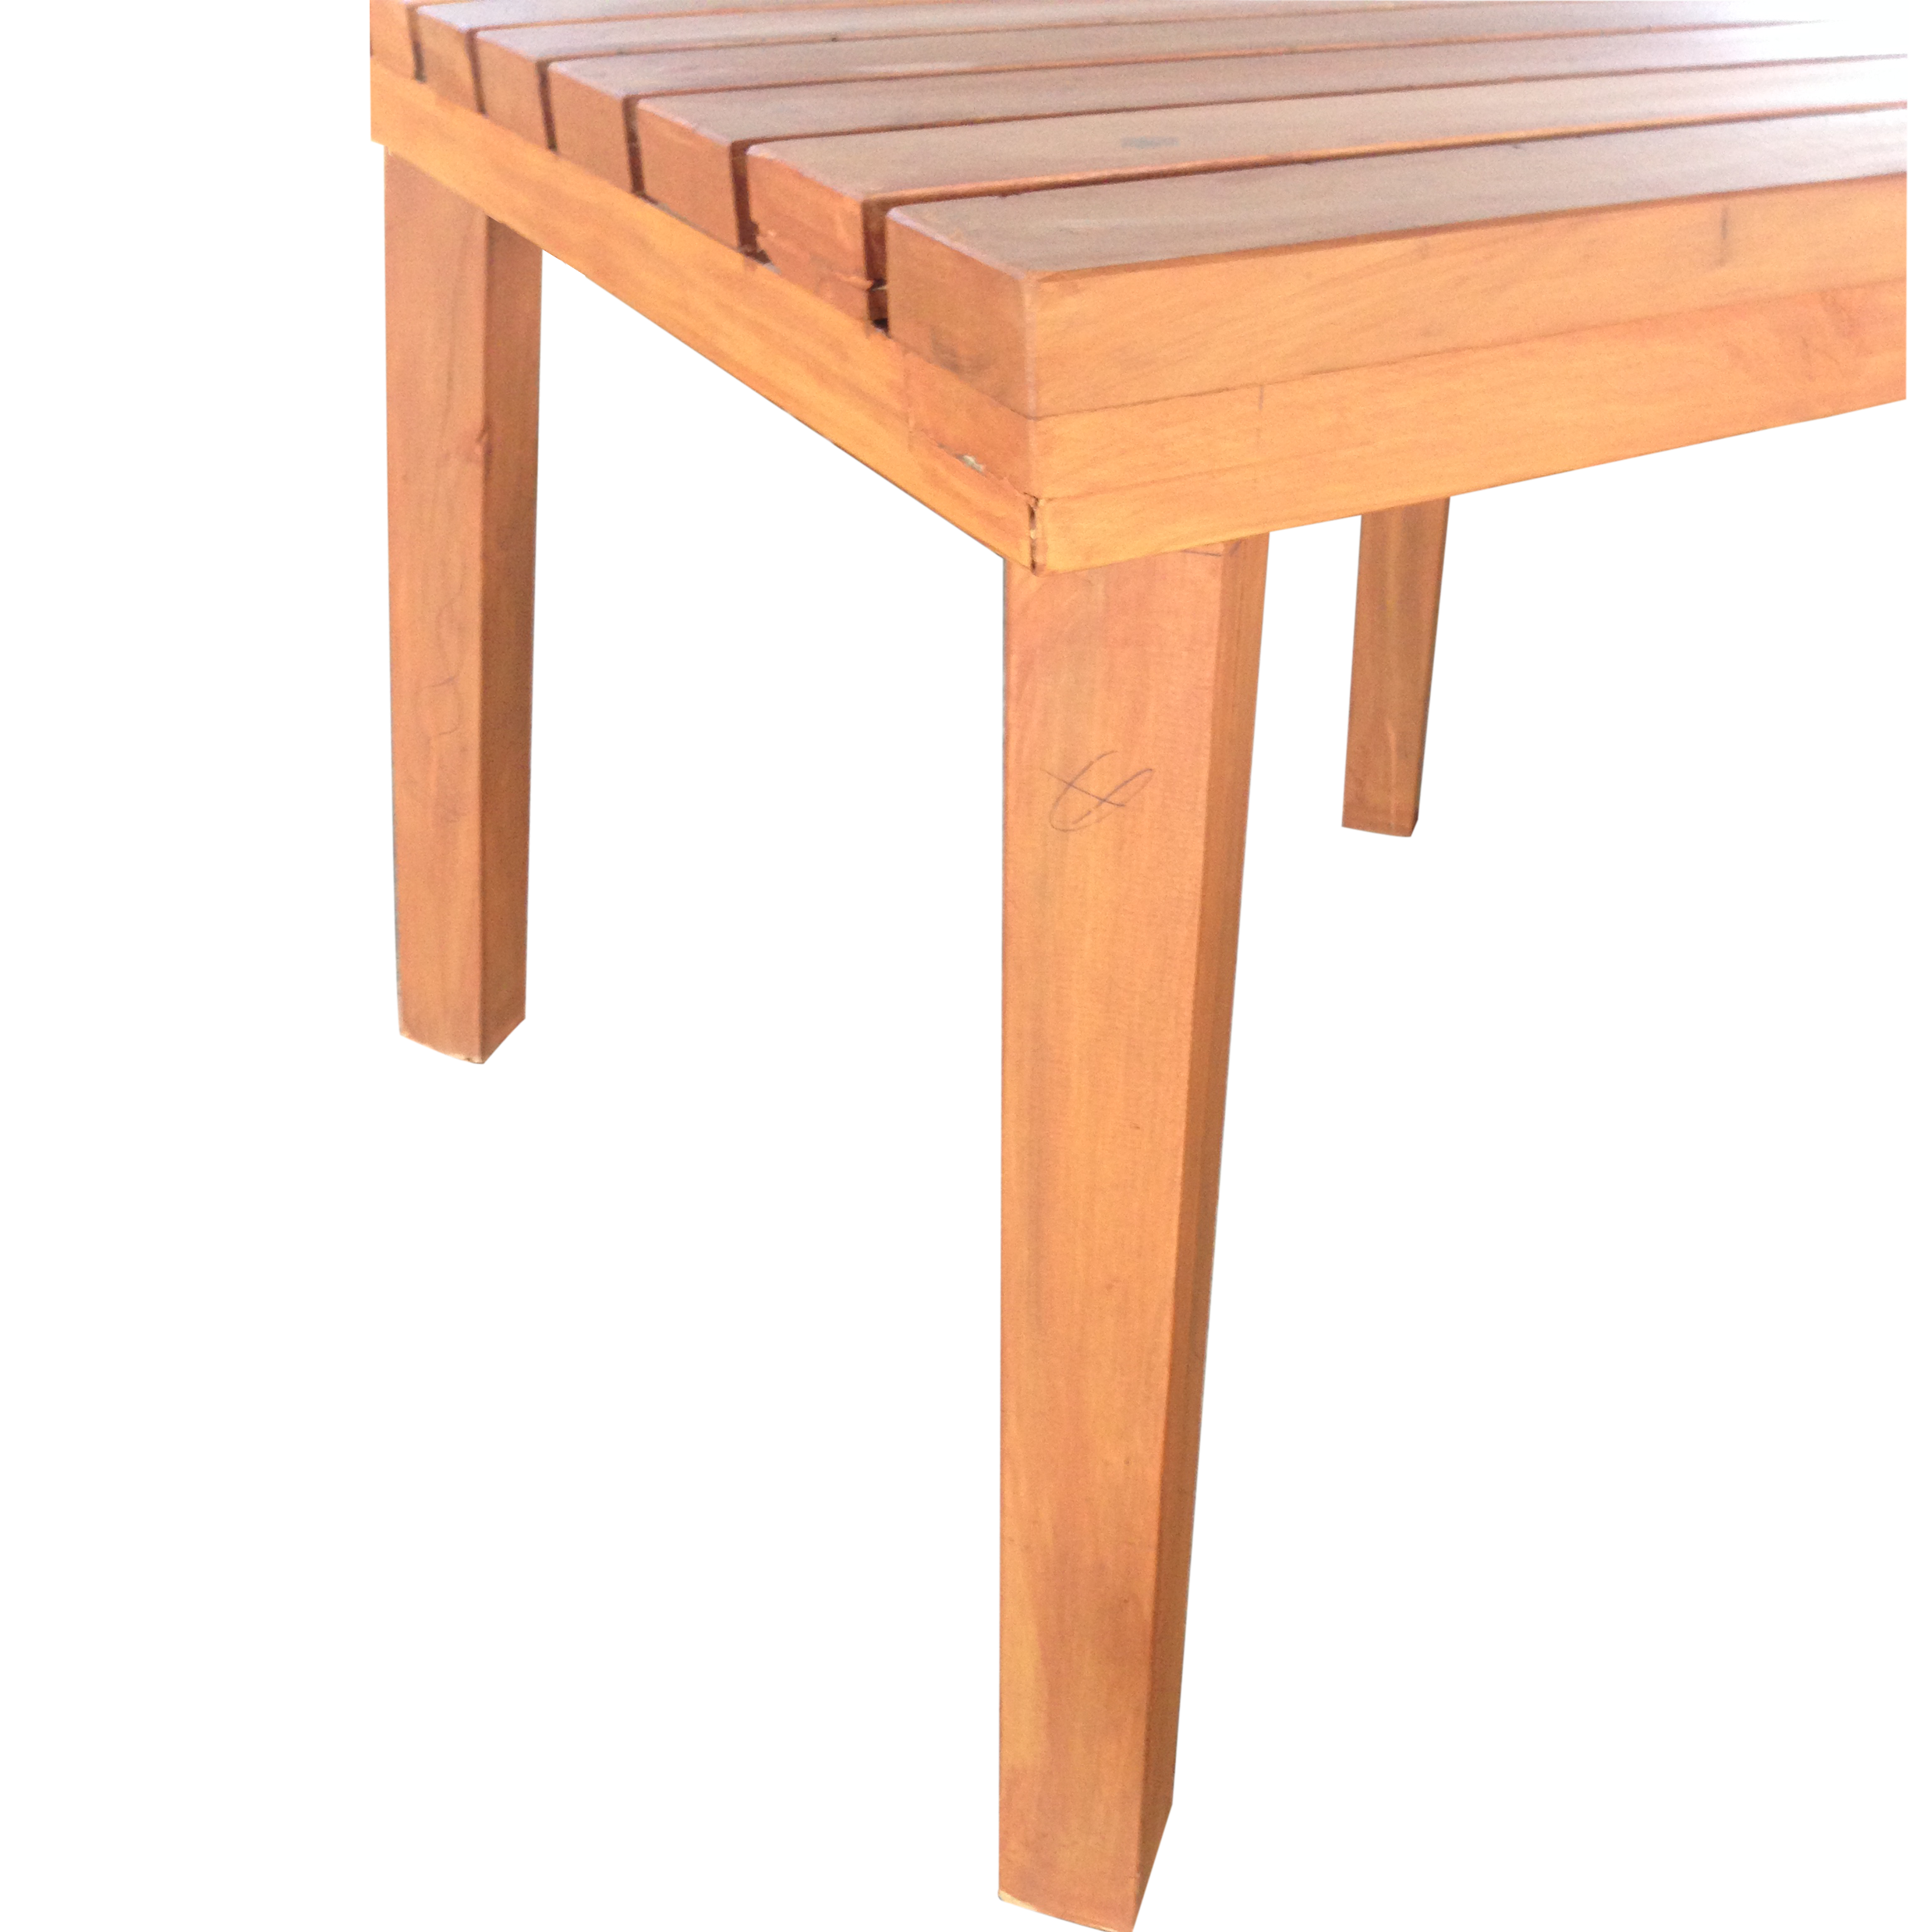 100 Solid Wood Furnitures Bangalore Novicz  : 02 table from ll100proof.com size 2448 x 2478 png 2581kB